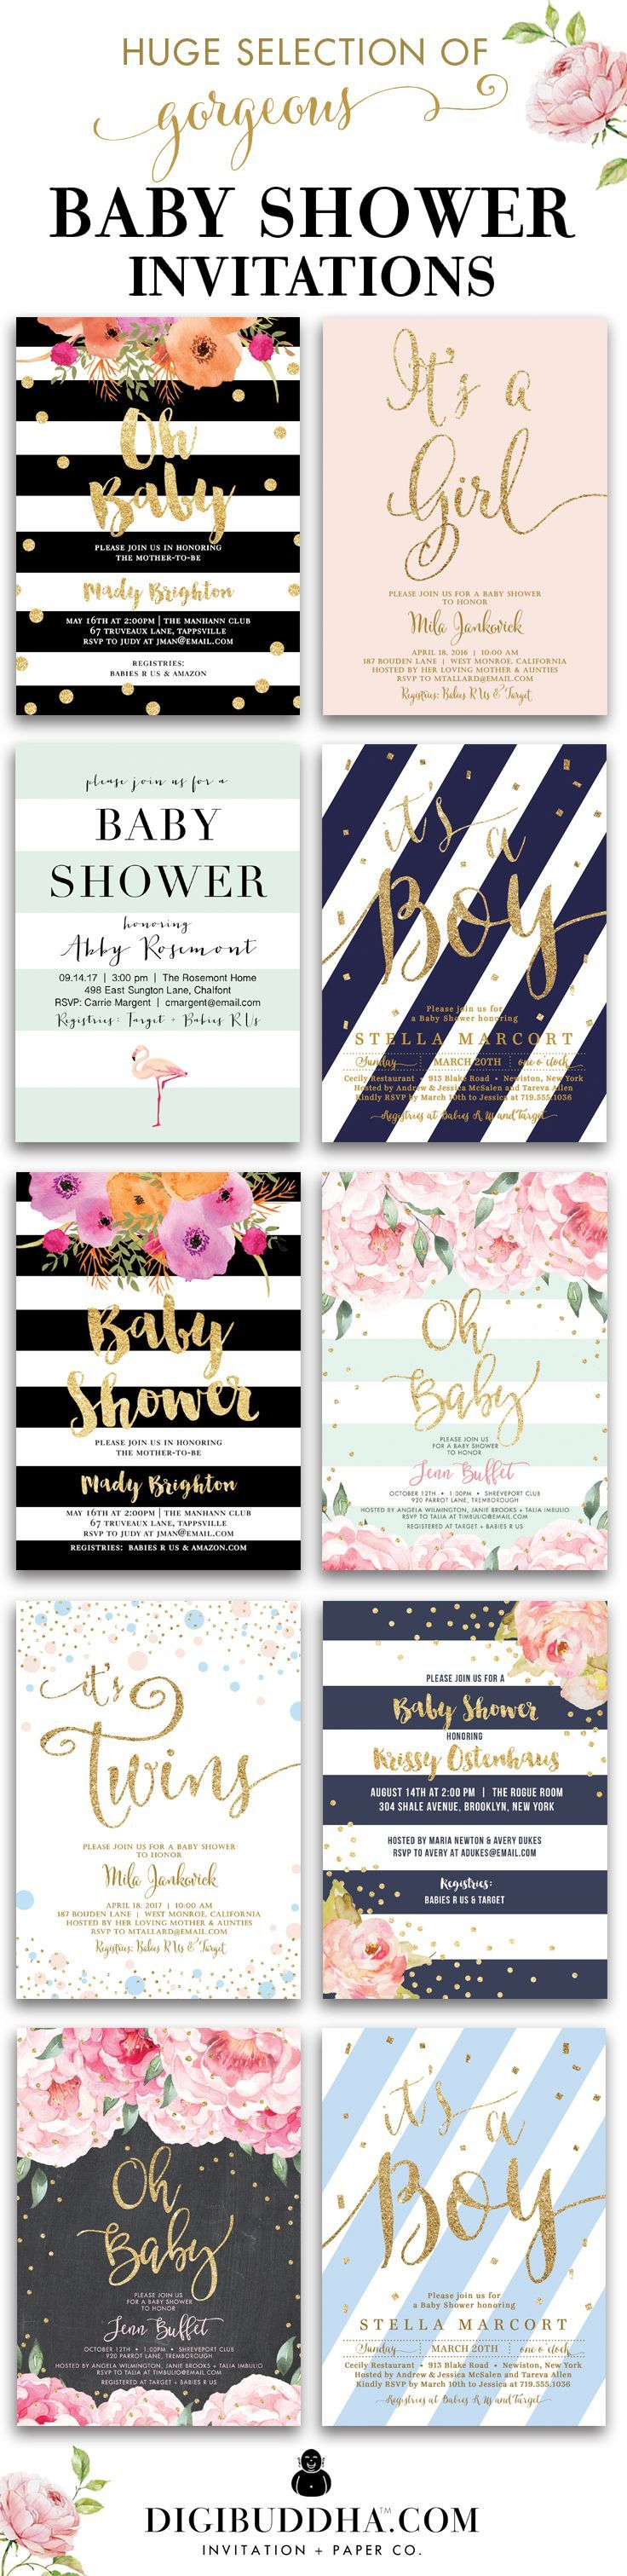 The 25 best Twin boy and girl baby shower ideas on Pinterest